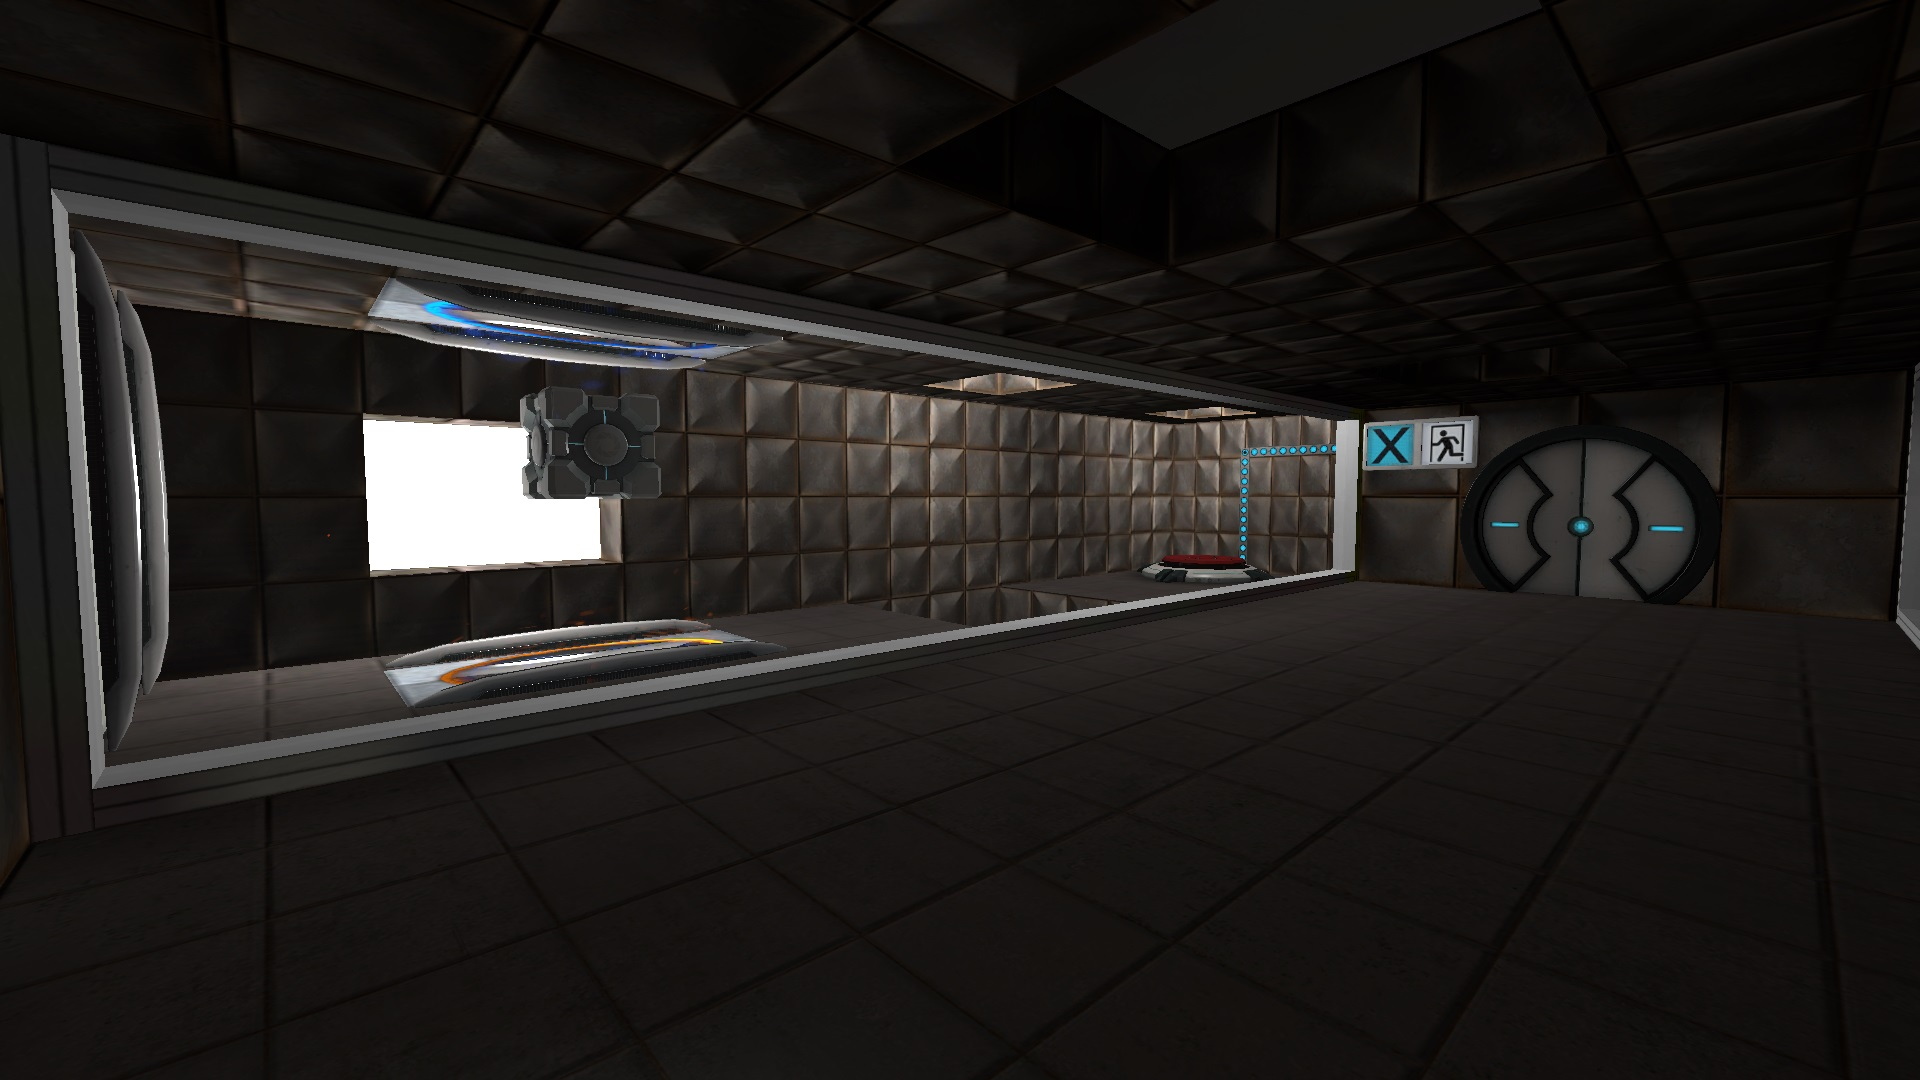 The third tutorial room includes a cube in an infinite fall.